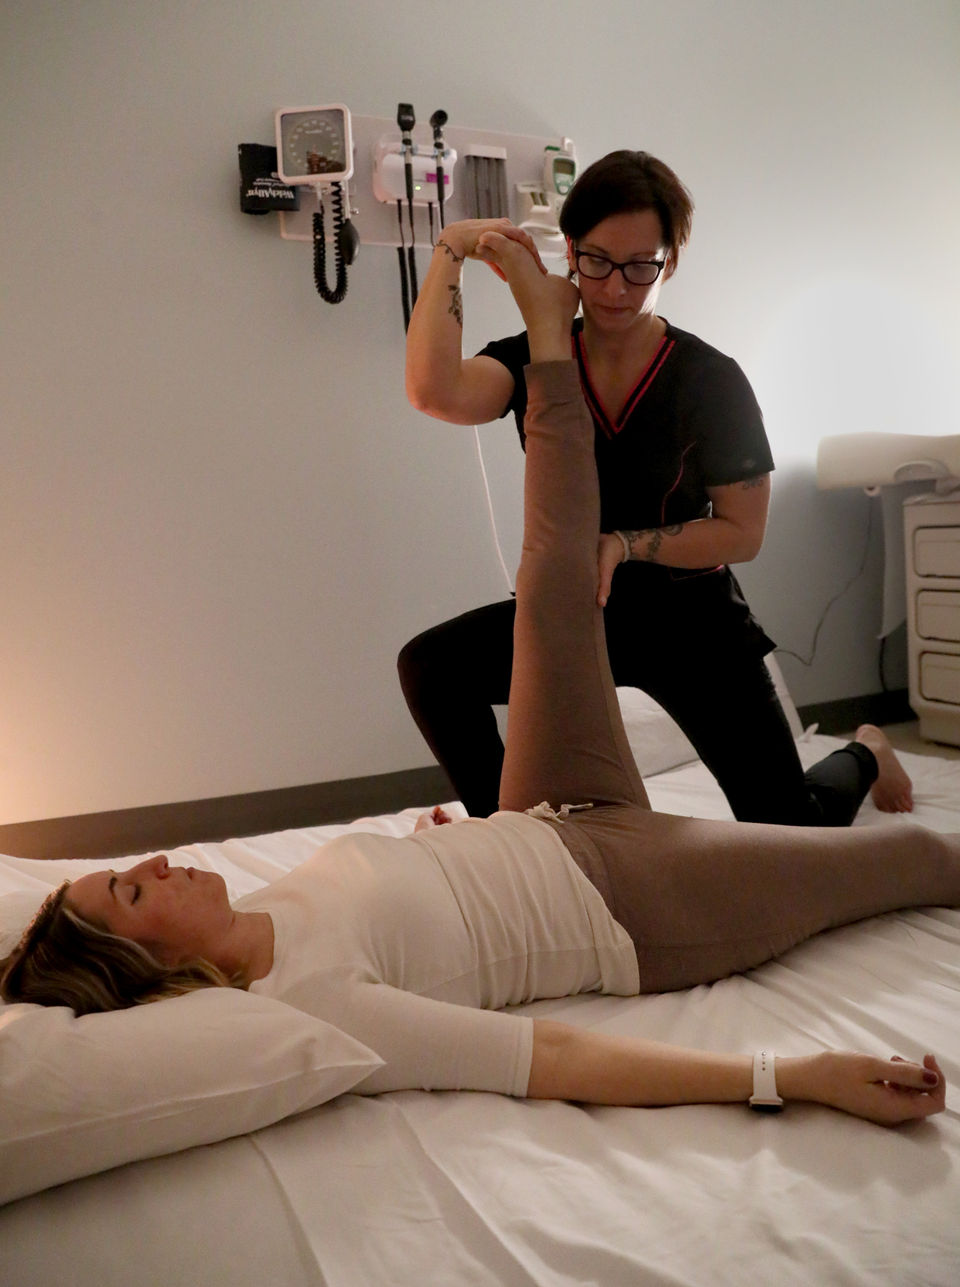 Thai yoga massage offers drug-free pain relief, available at